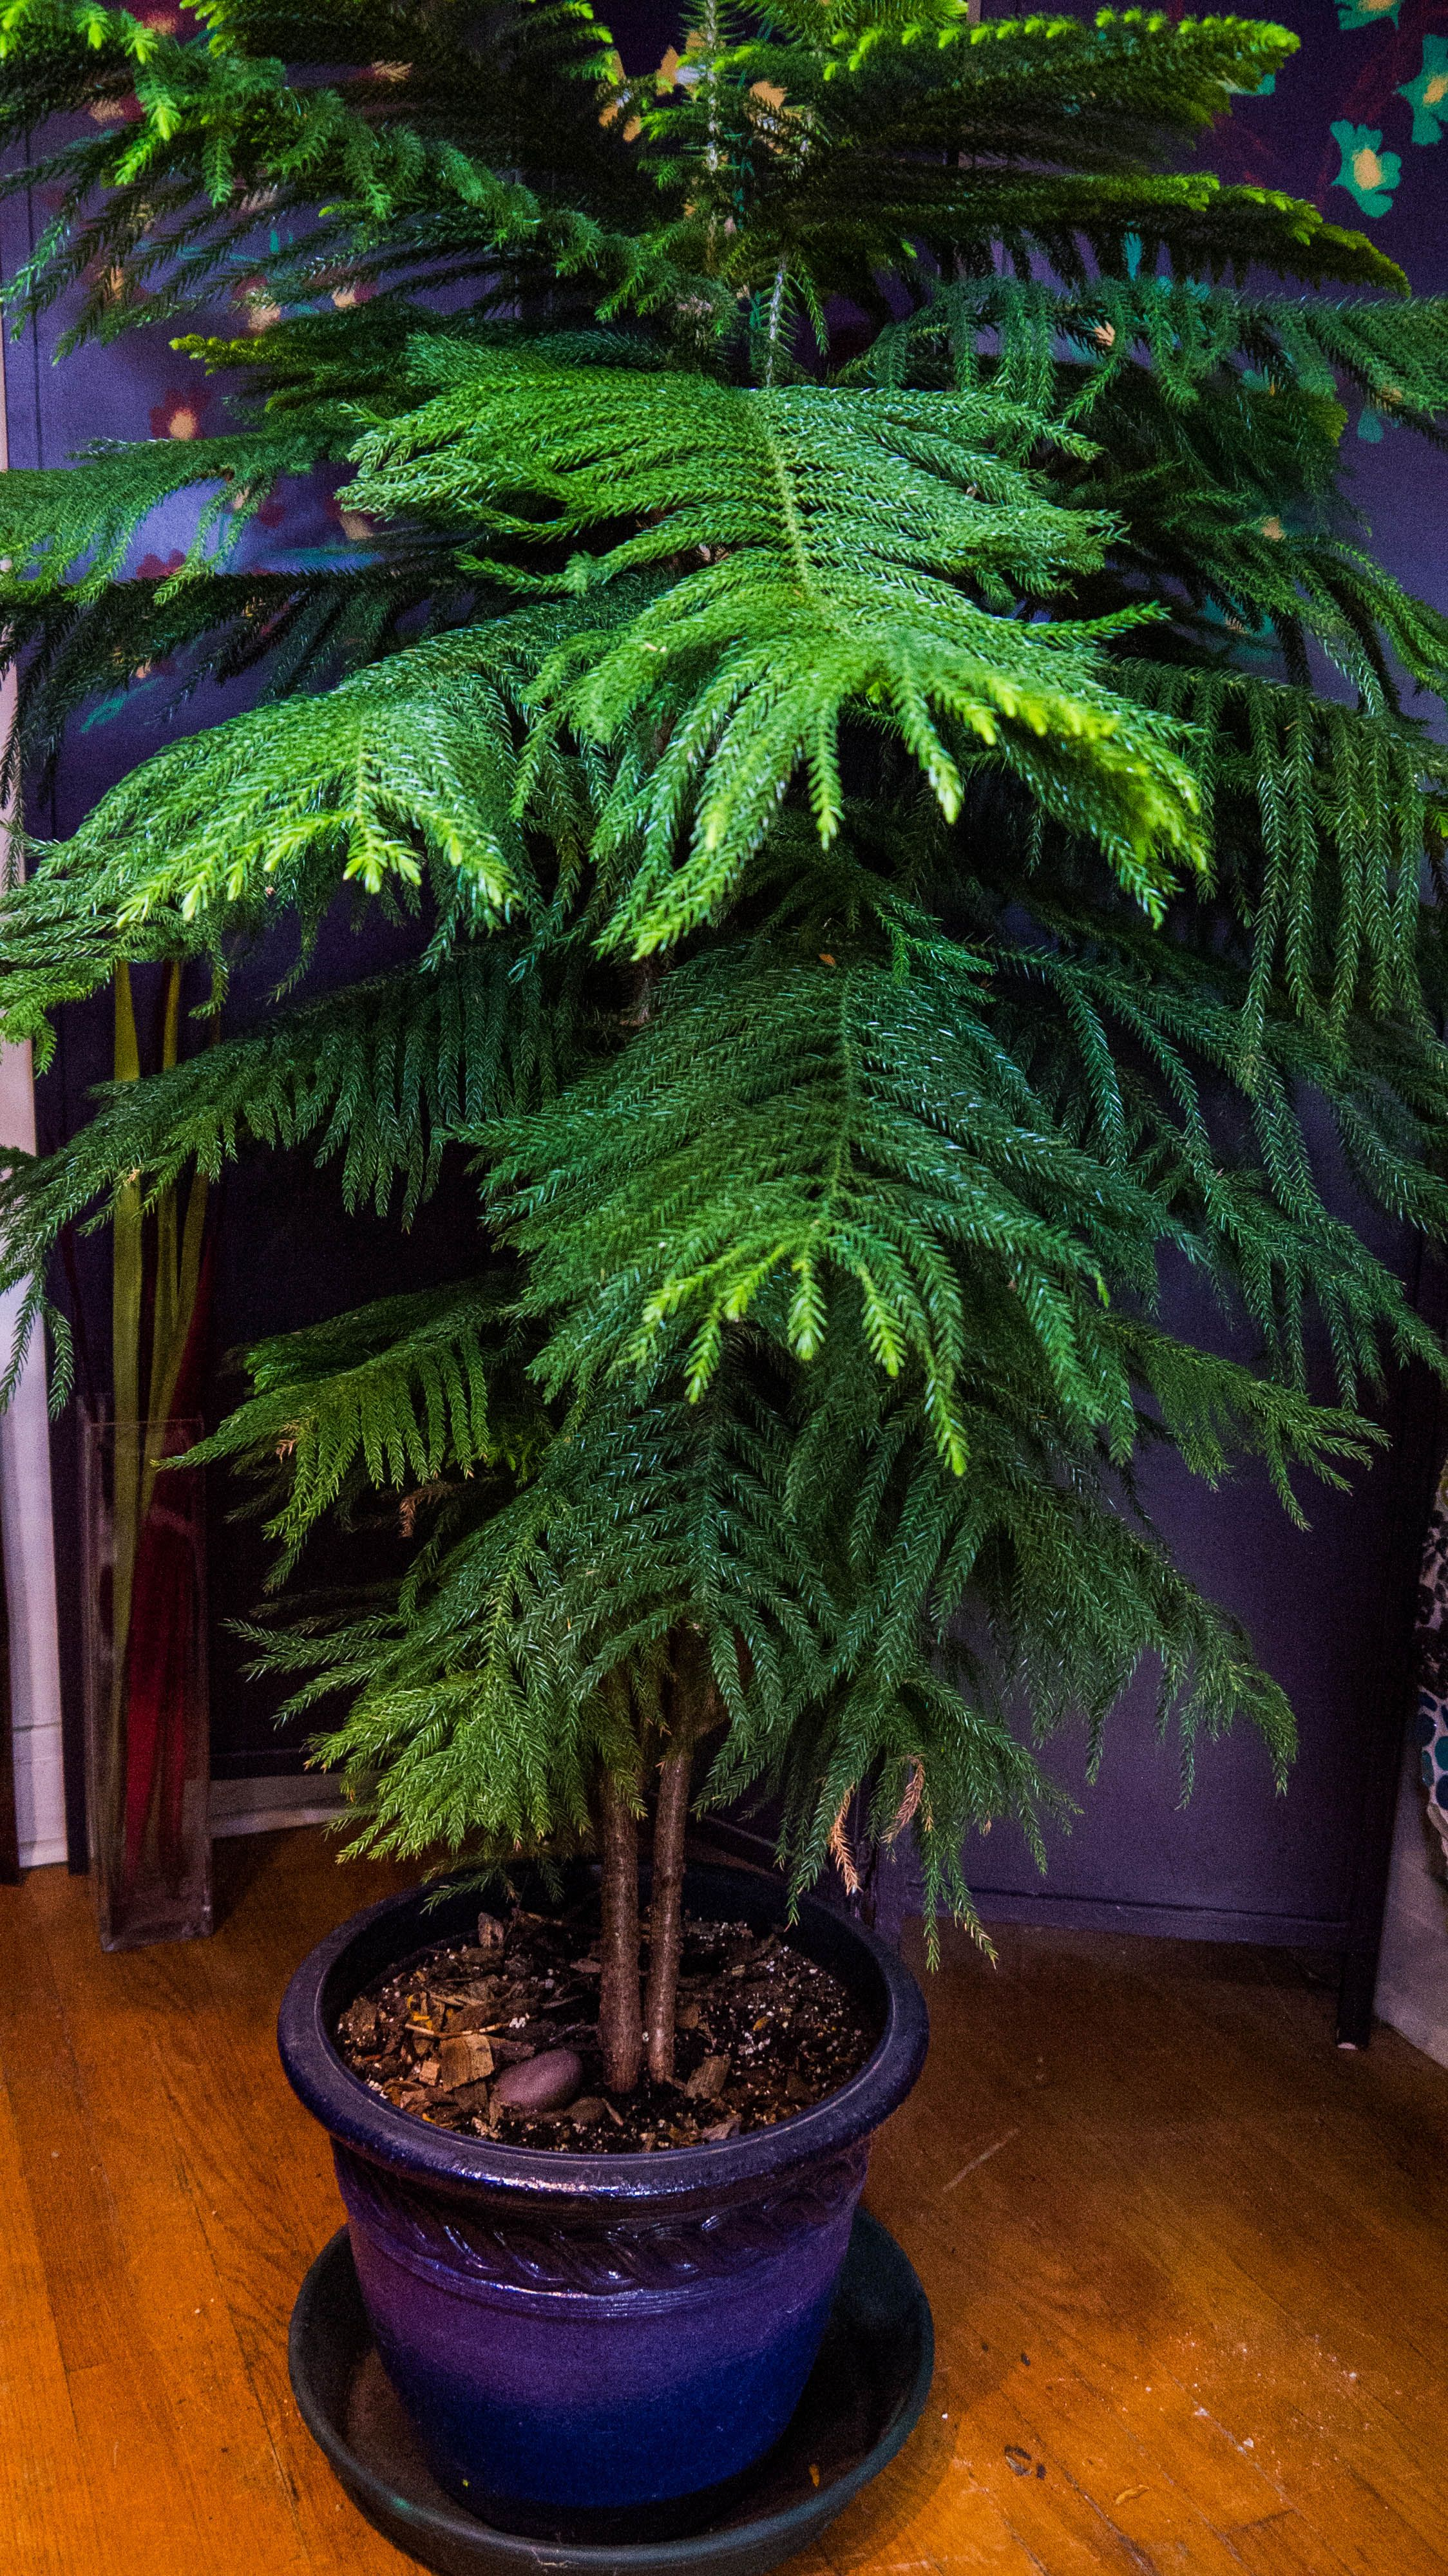 And information network araucaria heterophylla norfolk pine - Norfolk Pine Featured Indoor Plant